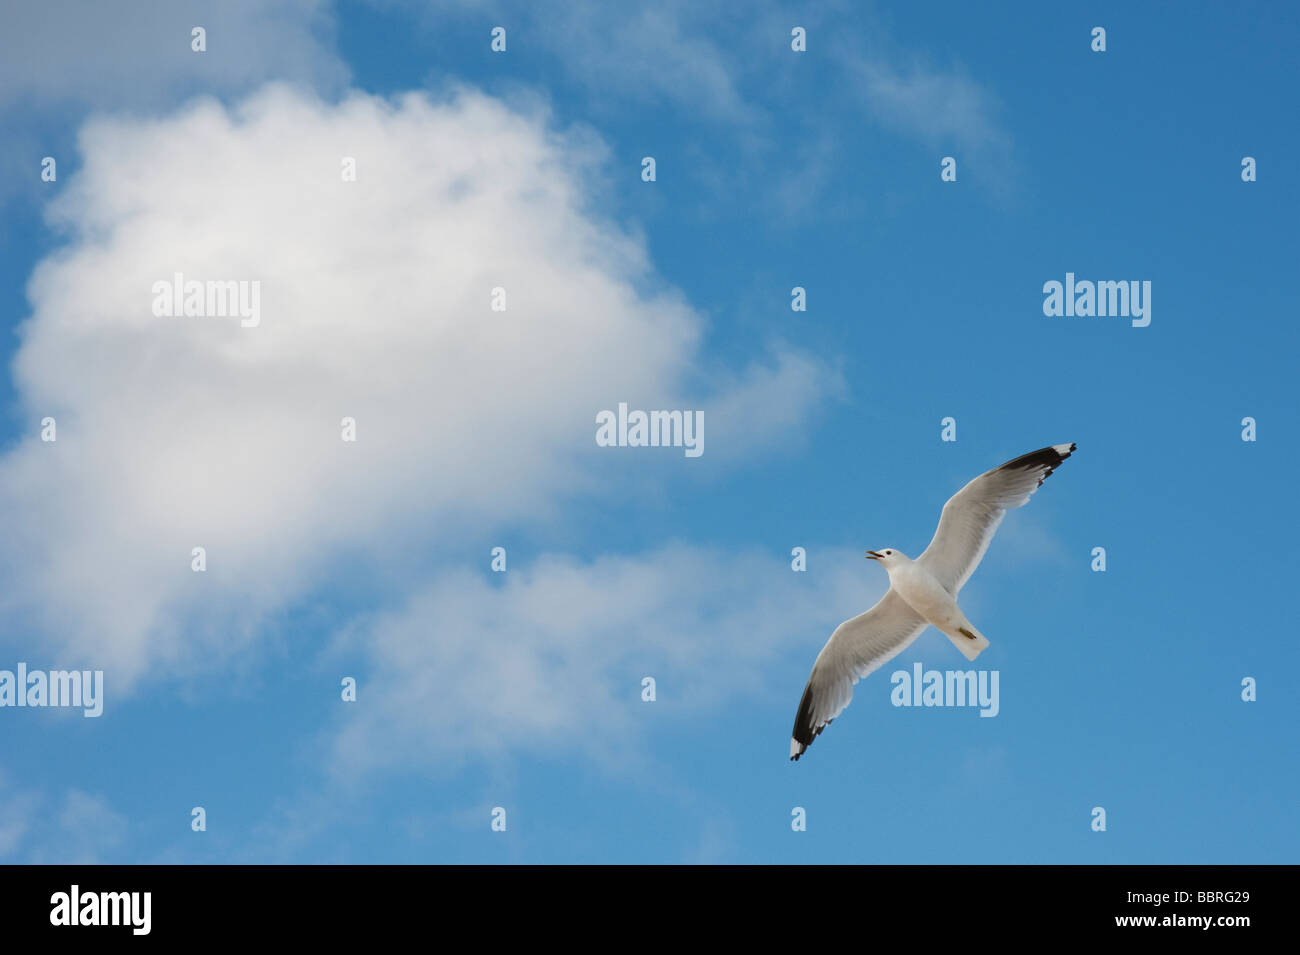 Larus canus. Hovering common gull against blue cloudy sky. Isle of Harris, Outer Hebrides, Scotland - Stock Image